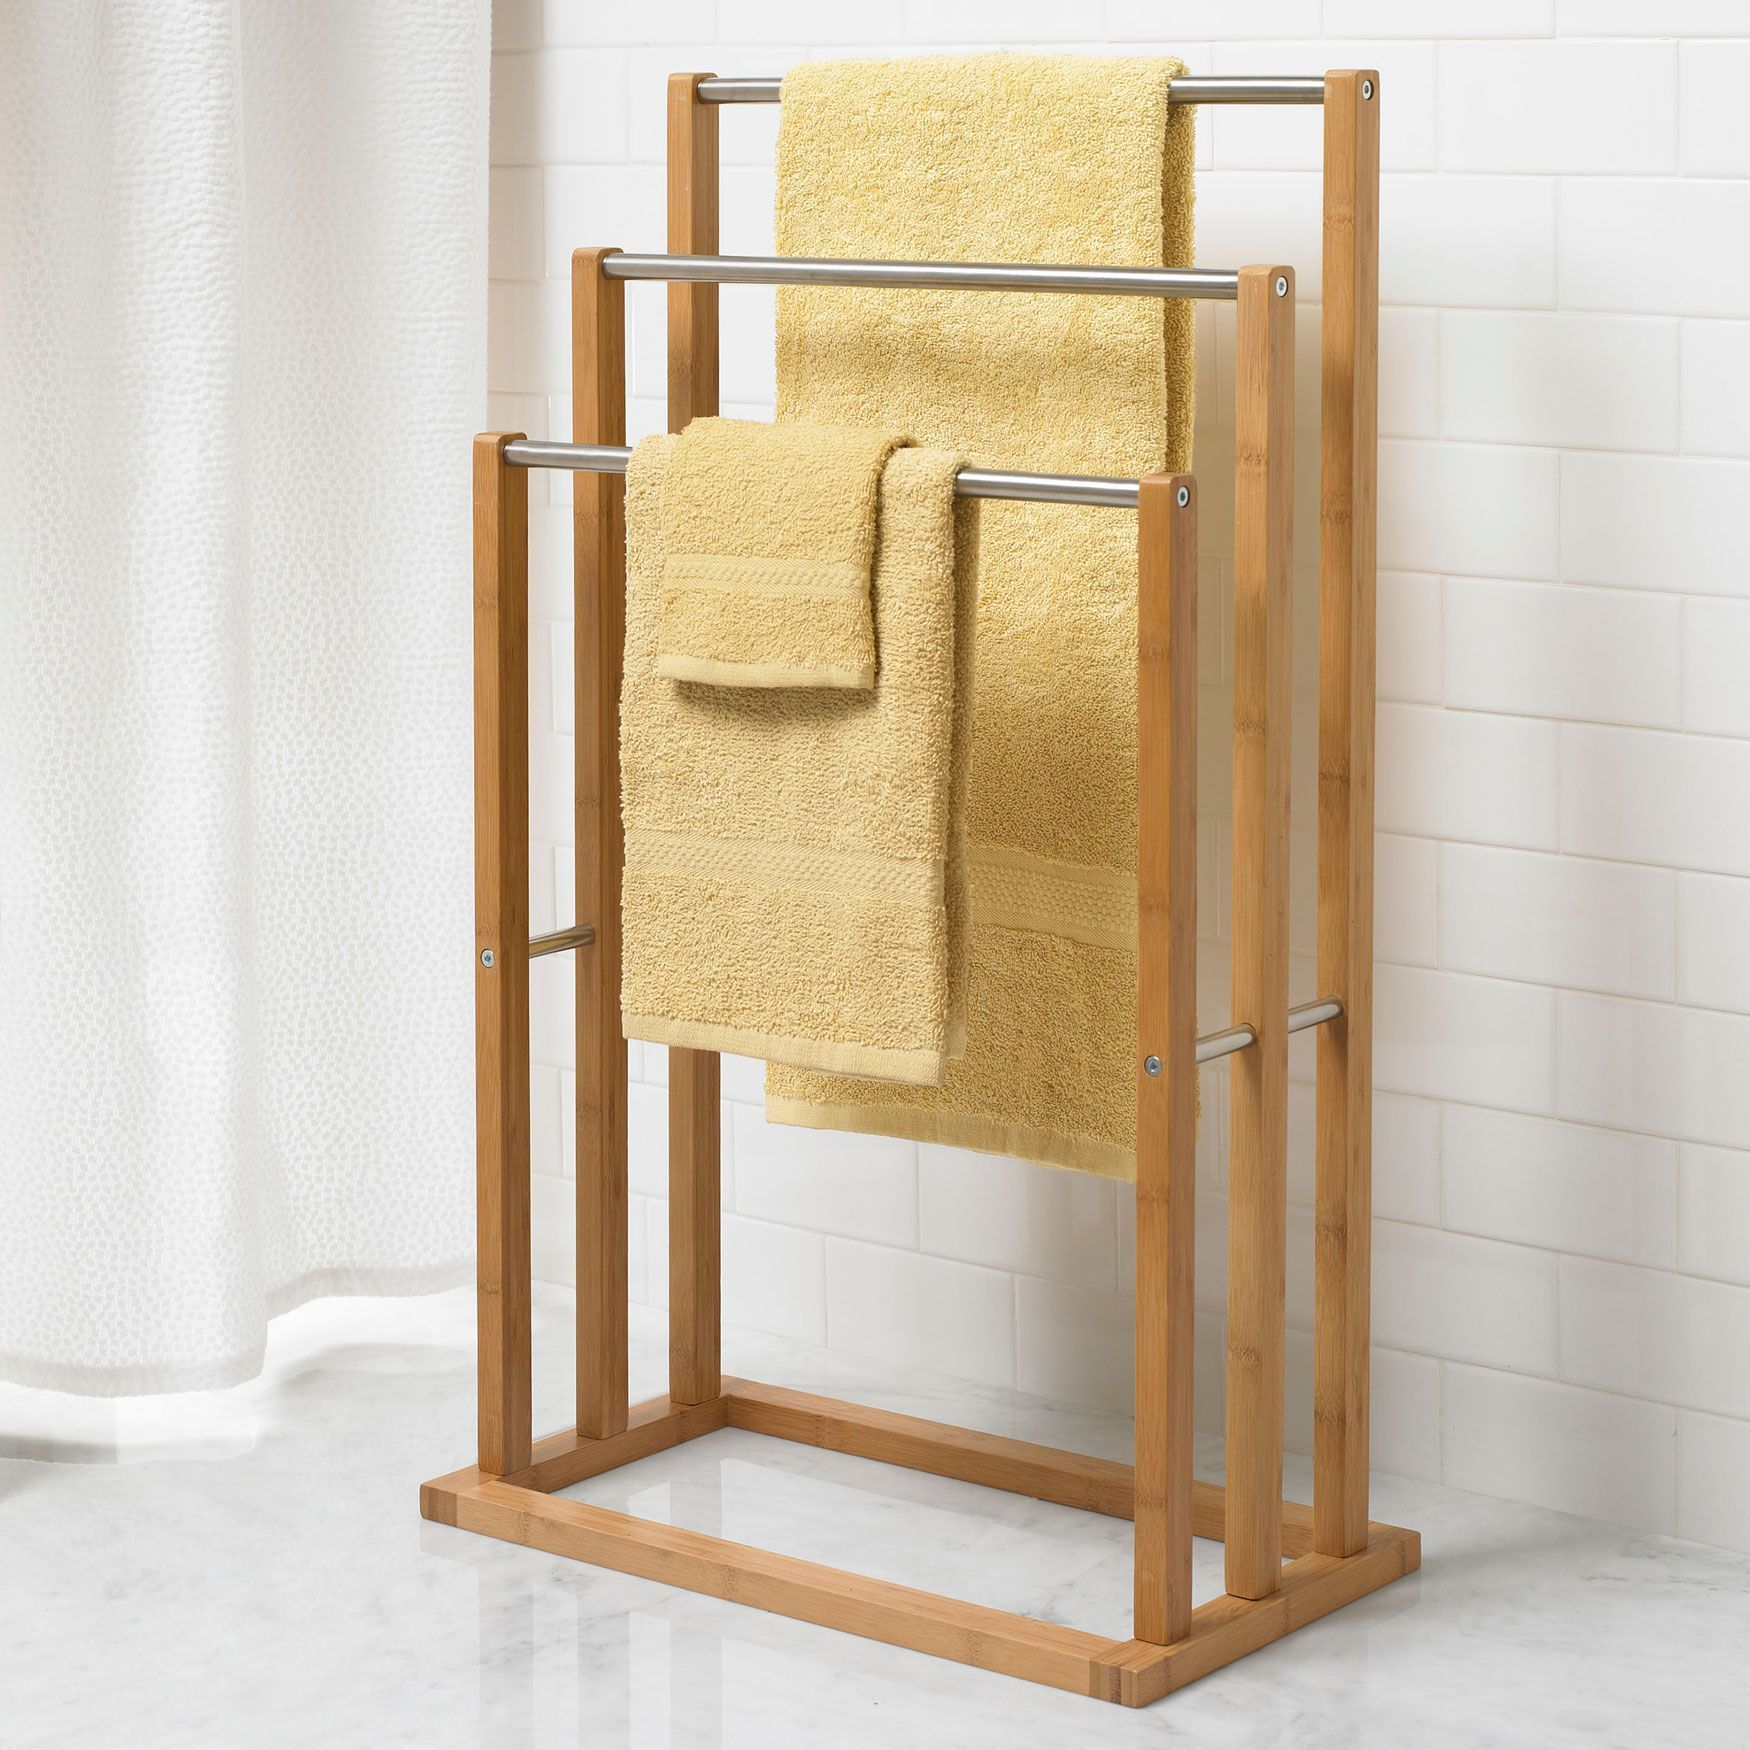 Bamboo 3 Tier Towel Rack Shower Curtains Accessories